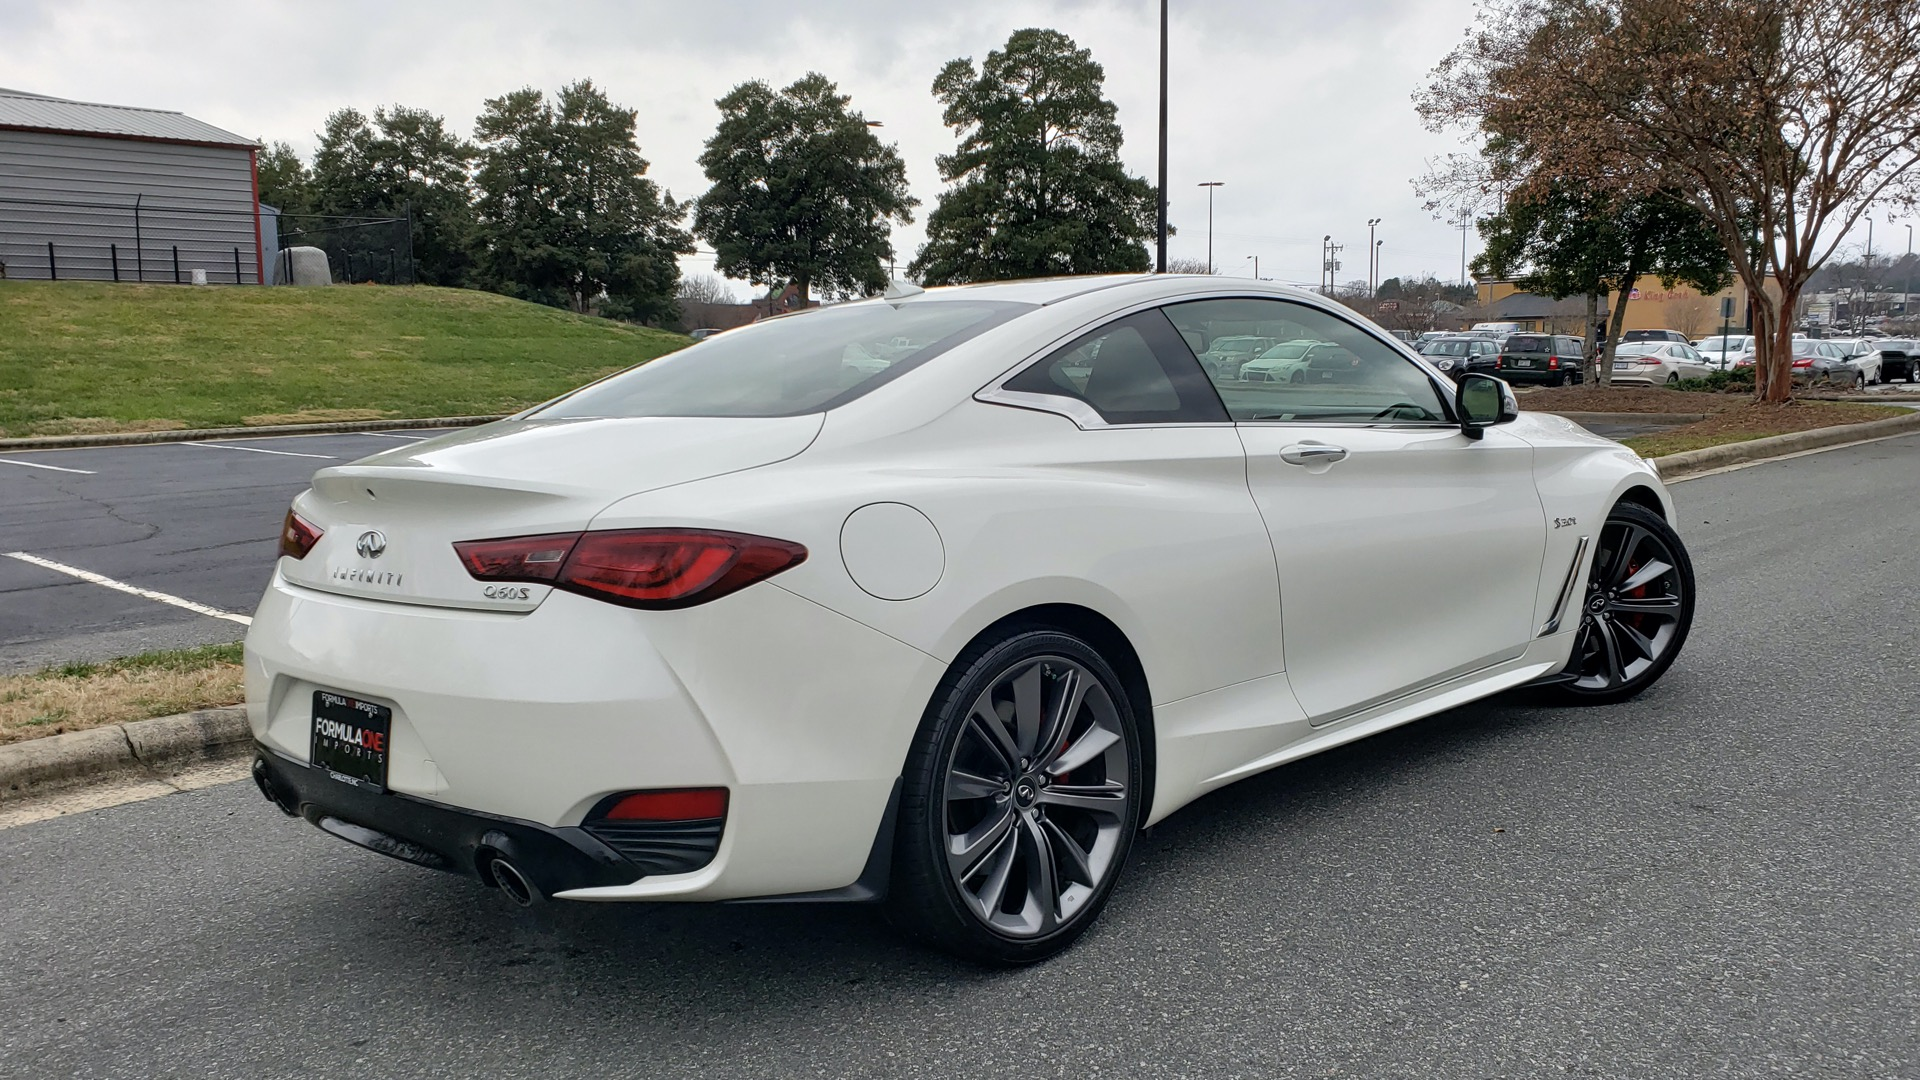 Used 2018 INFINITI Q60 RED SPORT 400 / SENSORY PKG / SUNROOF / NAV / REARVIEW for sale Sold at Formula Imports in Charlotte NC 28227 6